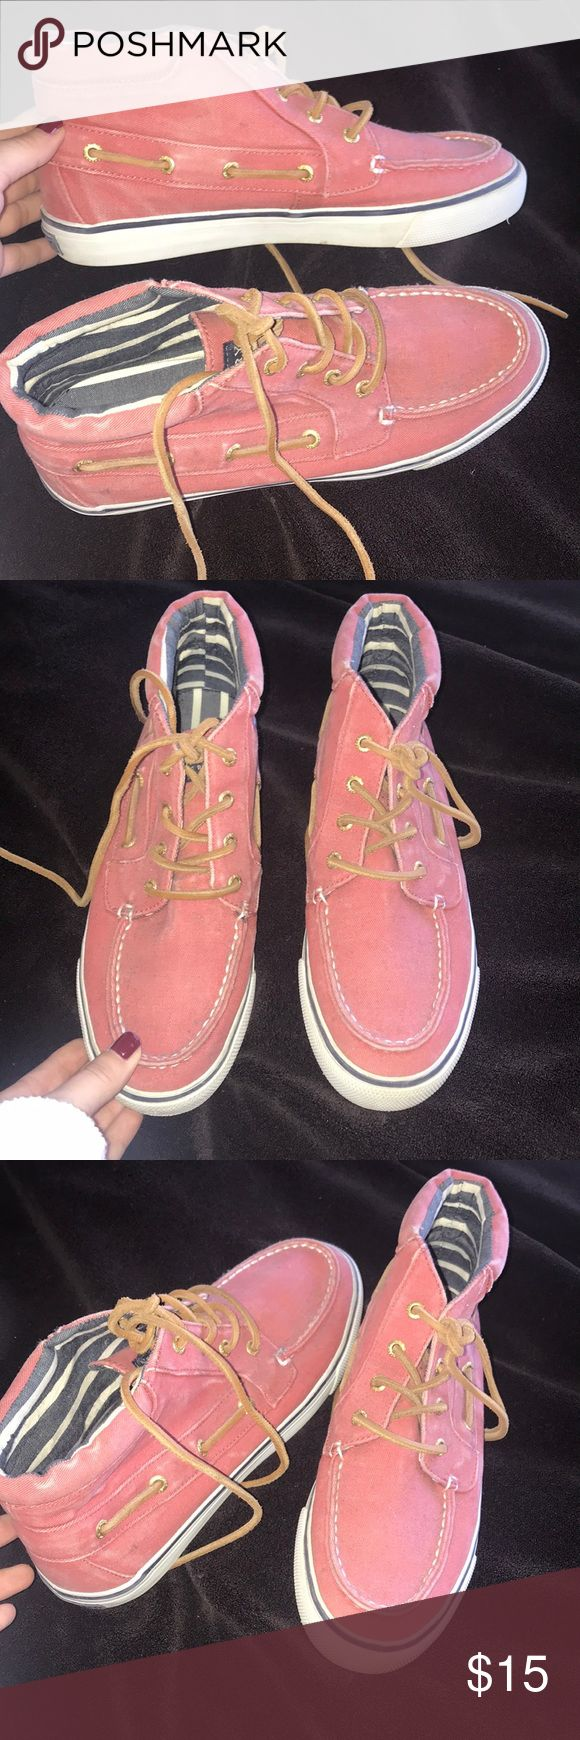 Sperry high tops Rusted pink sperrys Sperry Shoes Flats & Loafers